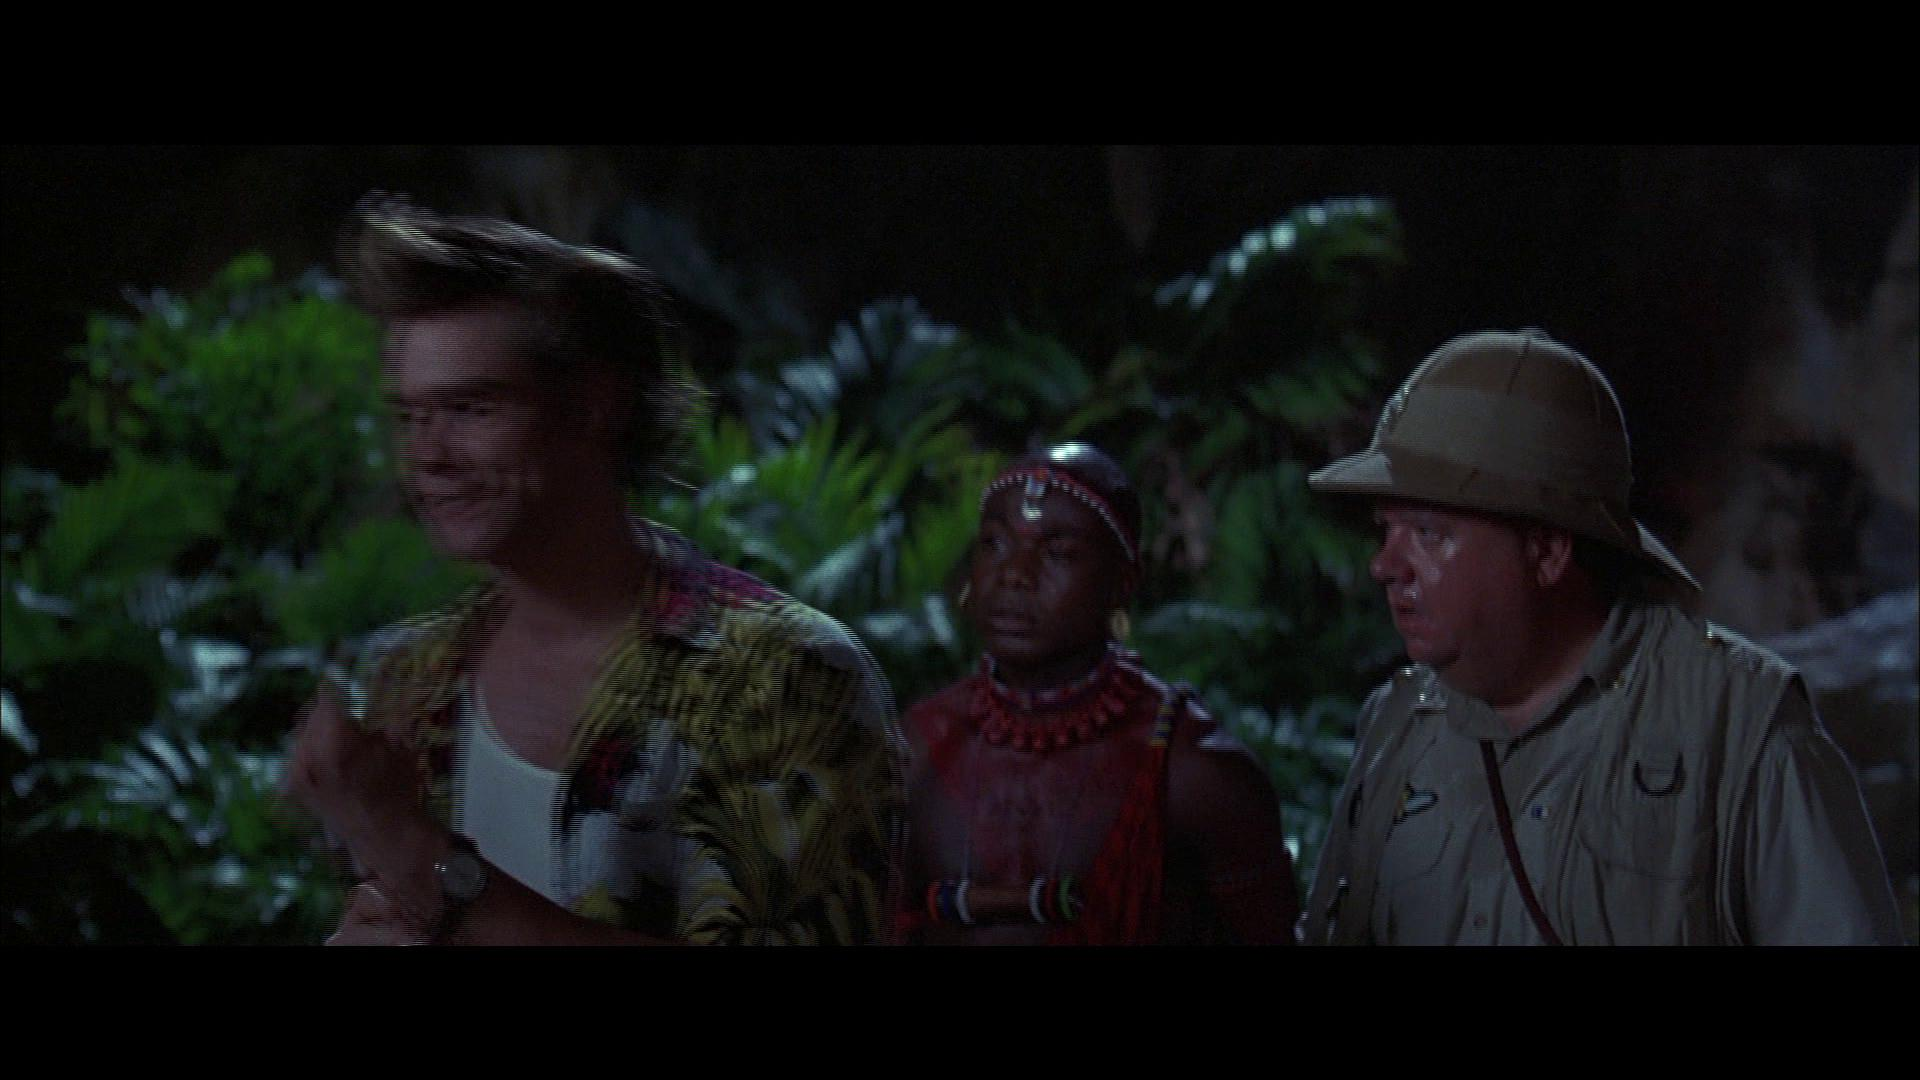 movierycom download the movie ace ventura when nature